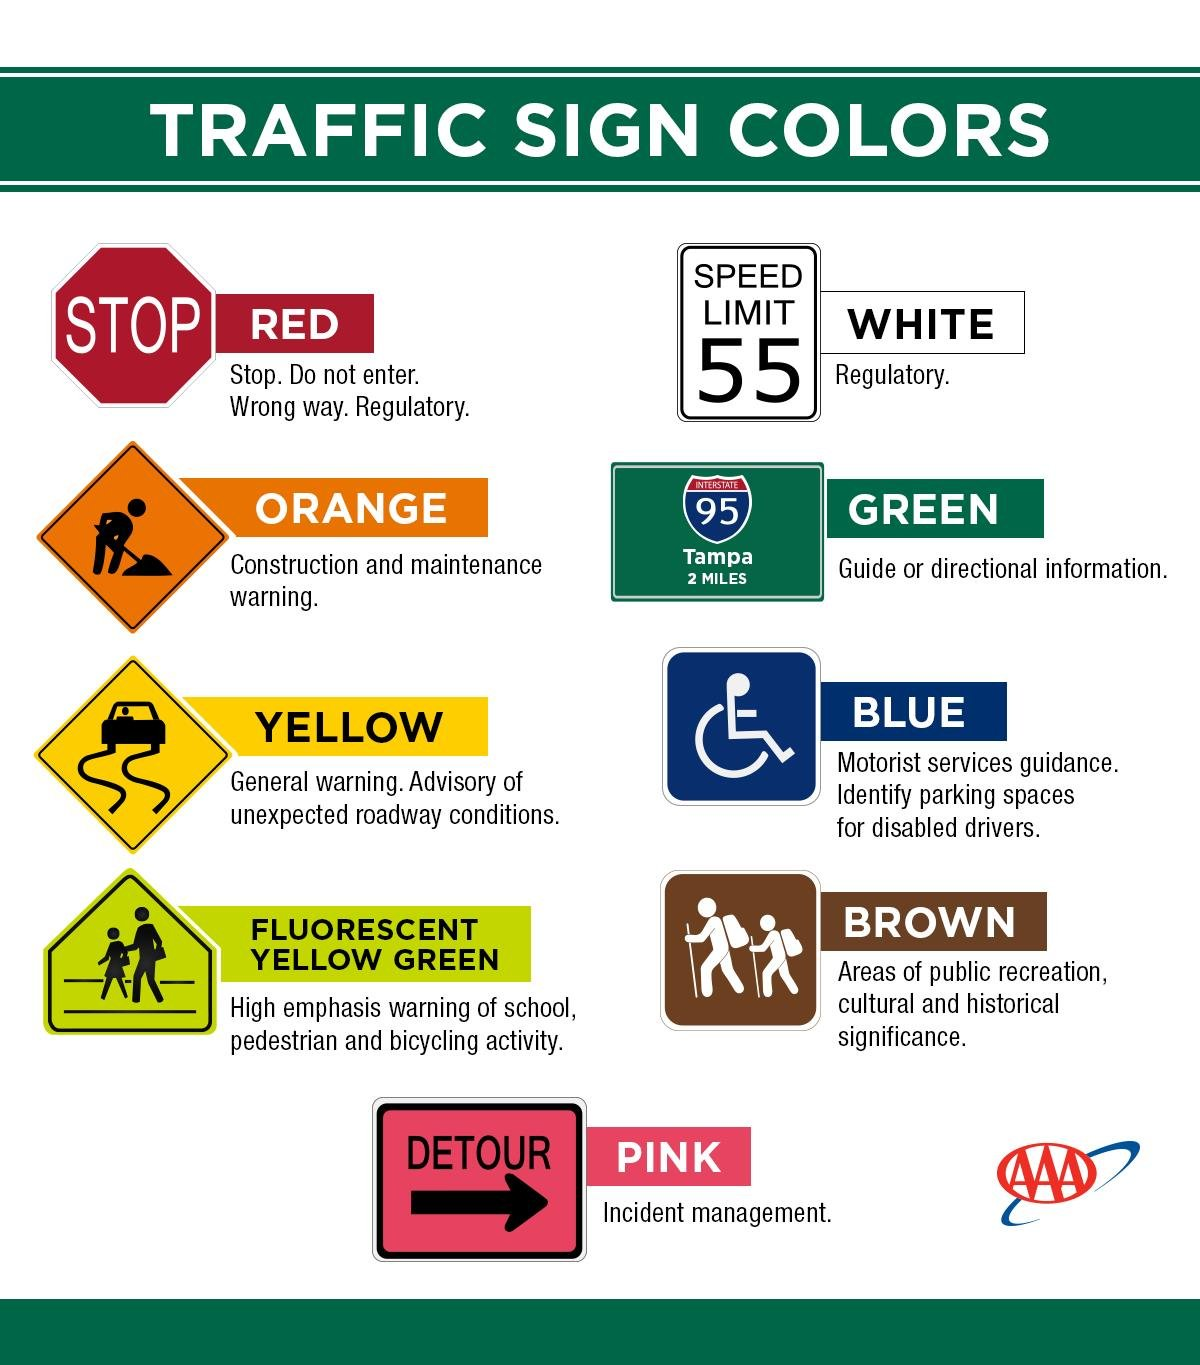 traffic sign color meaning